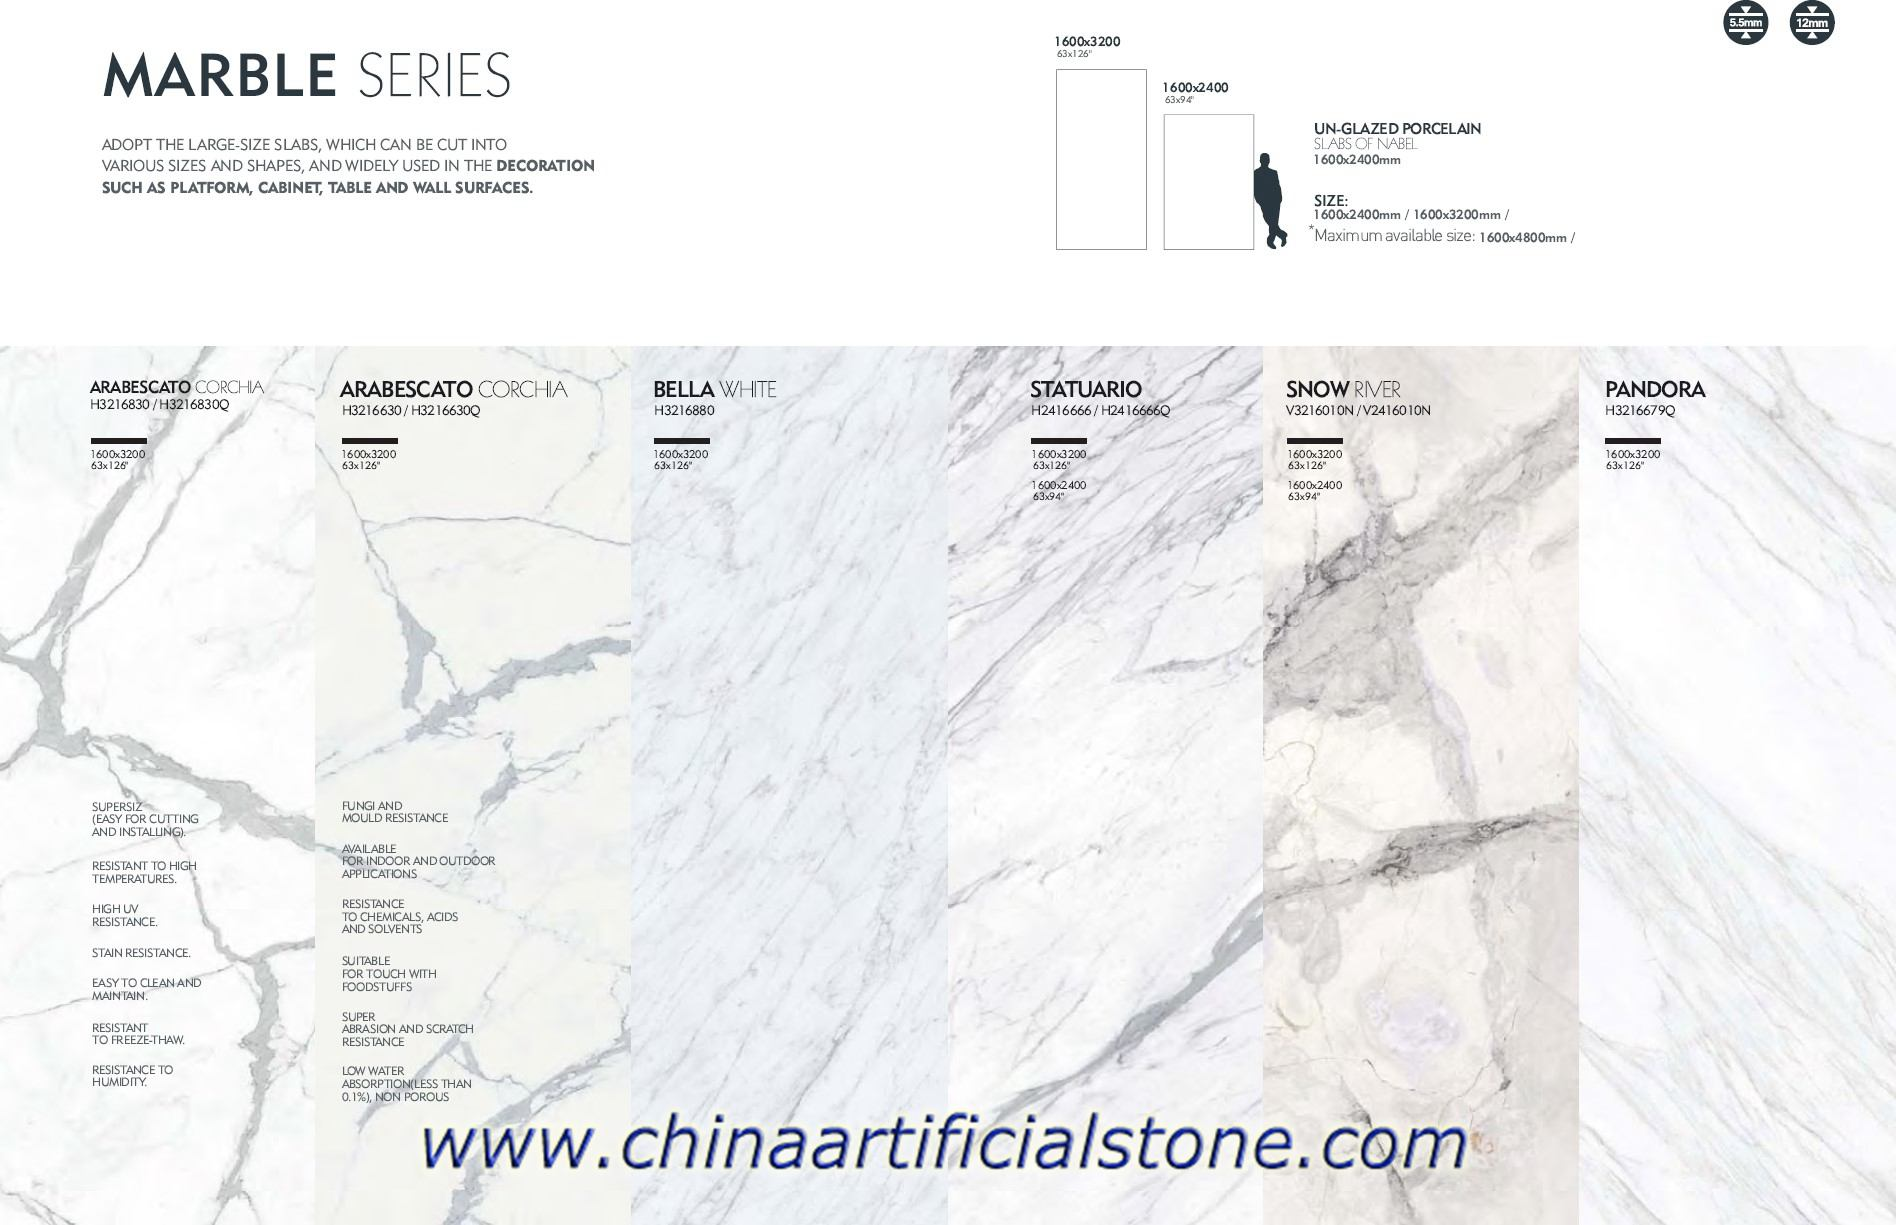 Large Format Porcelain Panels